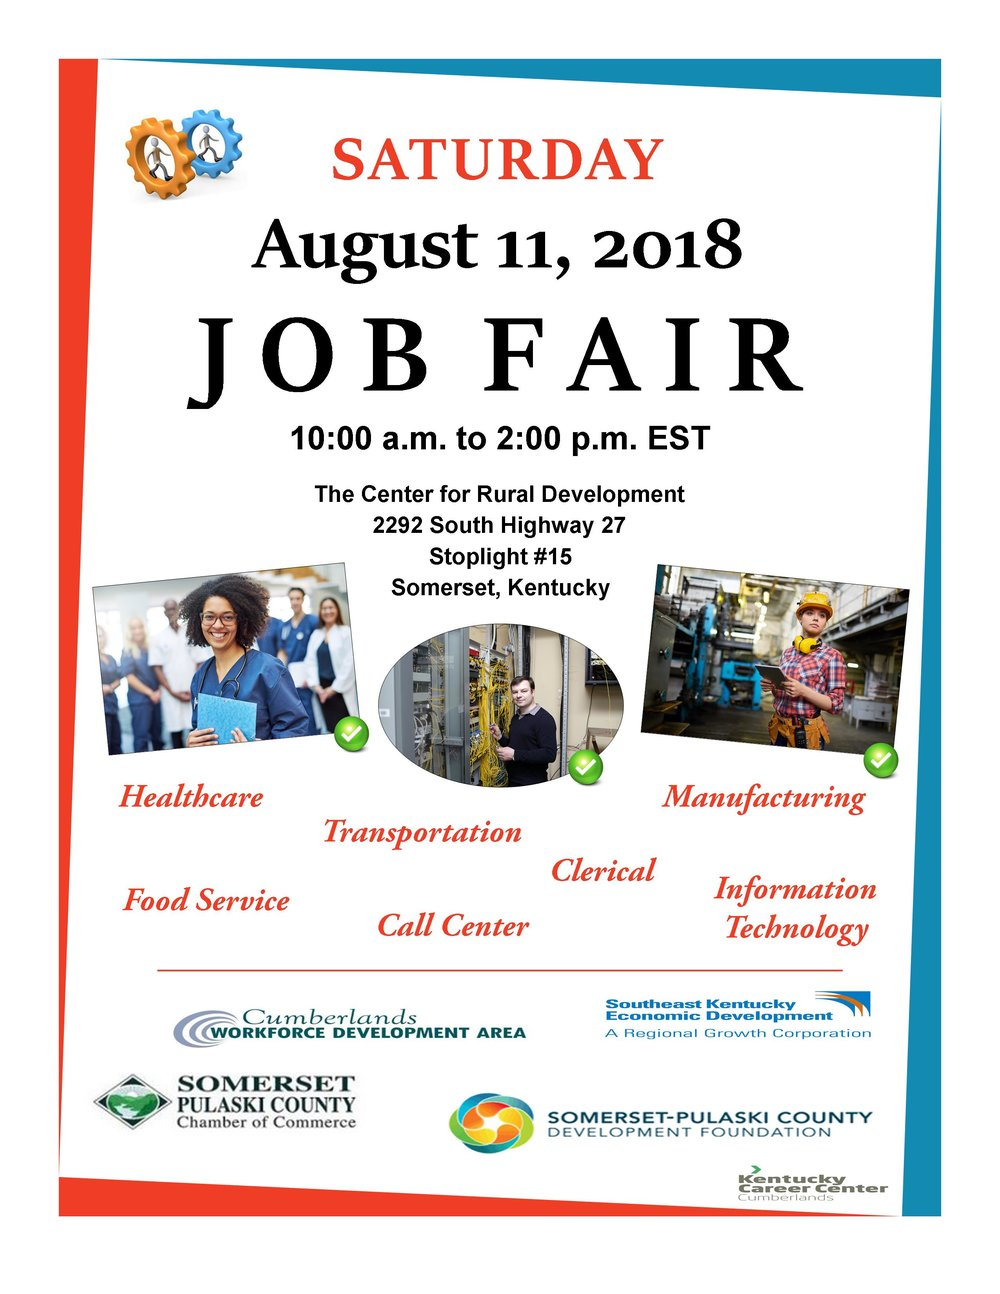 Job Fair Flyer Aug 2018.jpg